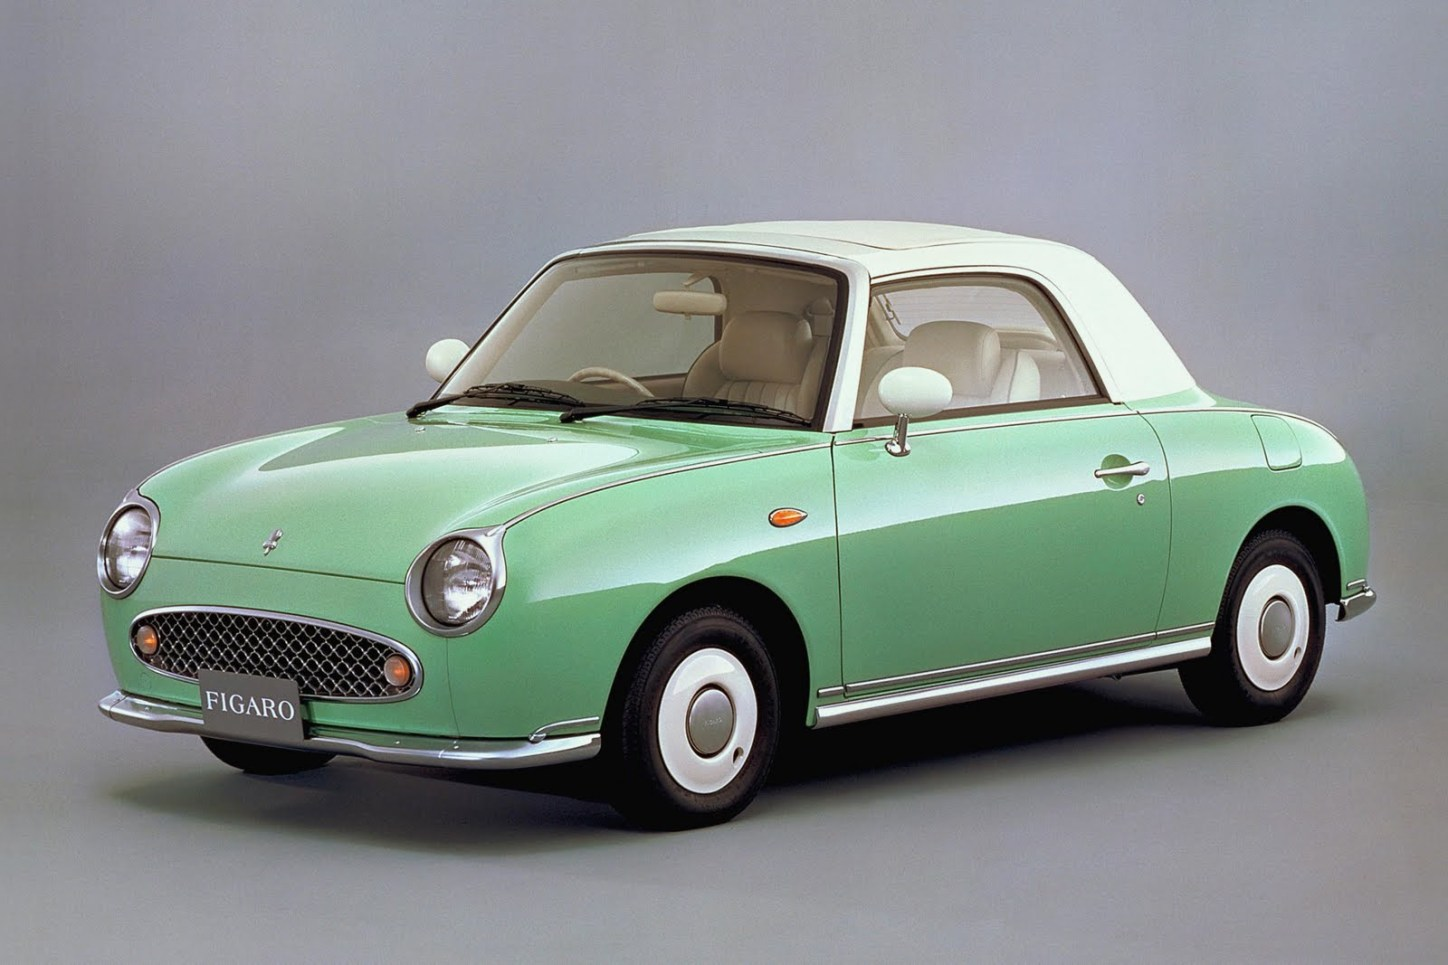 https://disaffectedmusings.files.wordpress.com/2018/10/e8f49-1989_nissan_figaro_concept_01.jpg?w=1448&h=966